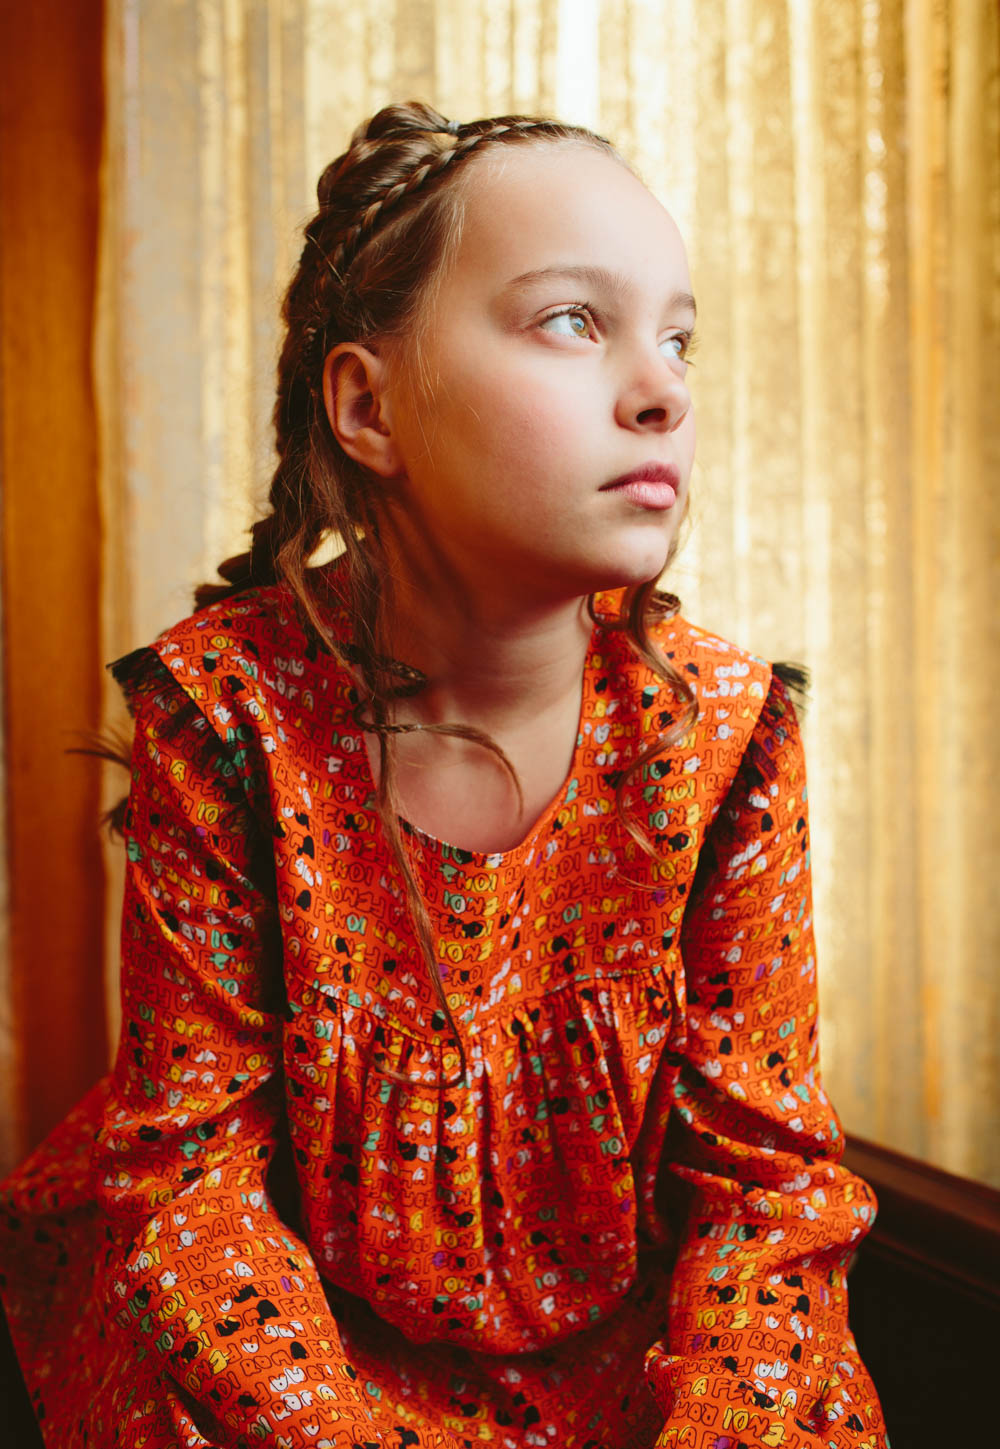 teslyn-editorial-child-model-orange-fendi-dress-portrait-0552-travis-dewitz